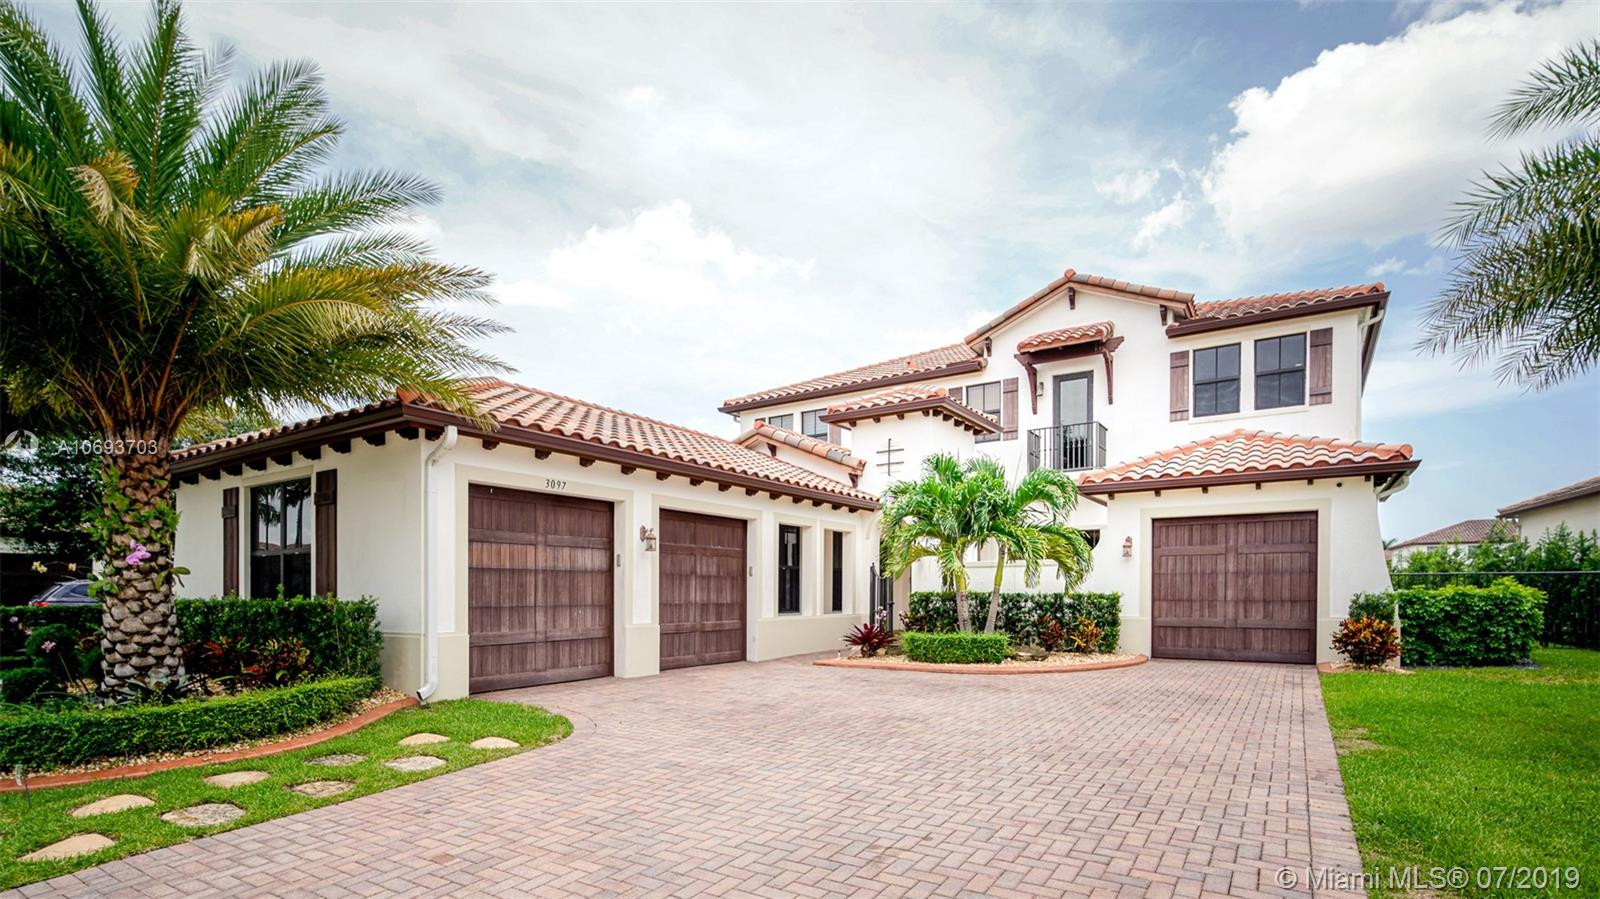 3097 NW 84th Way, Cooper City, Florida